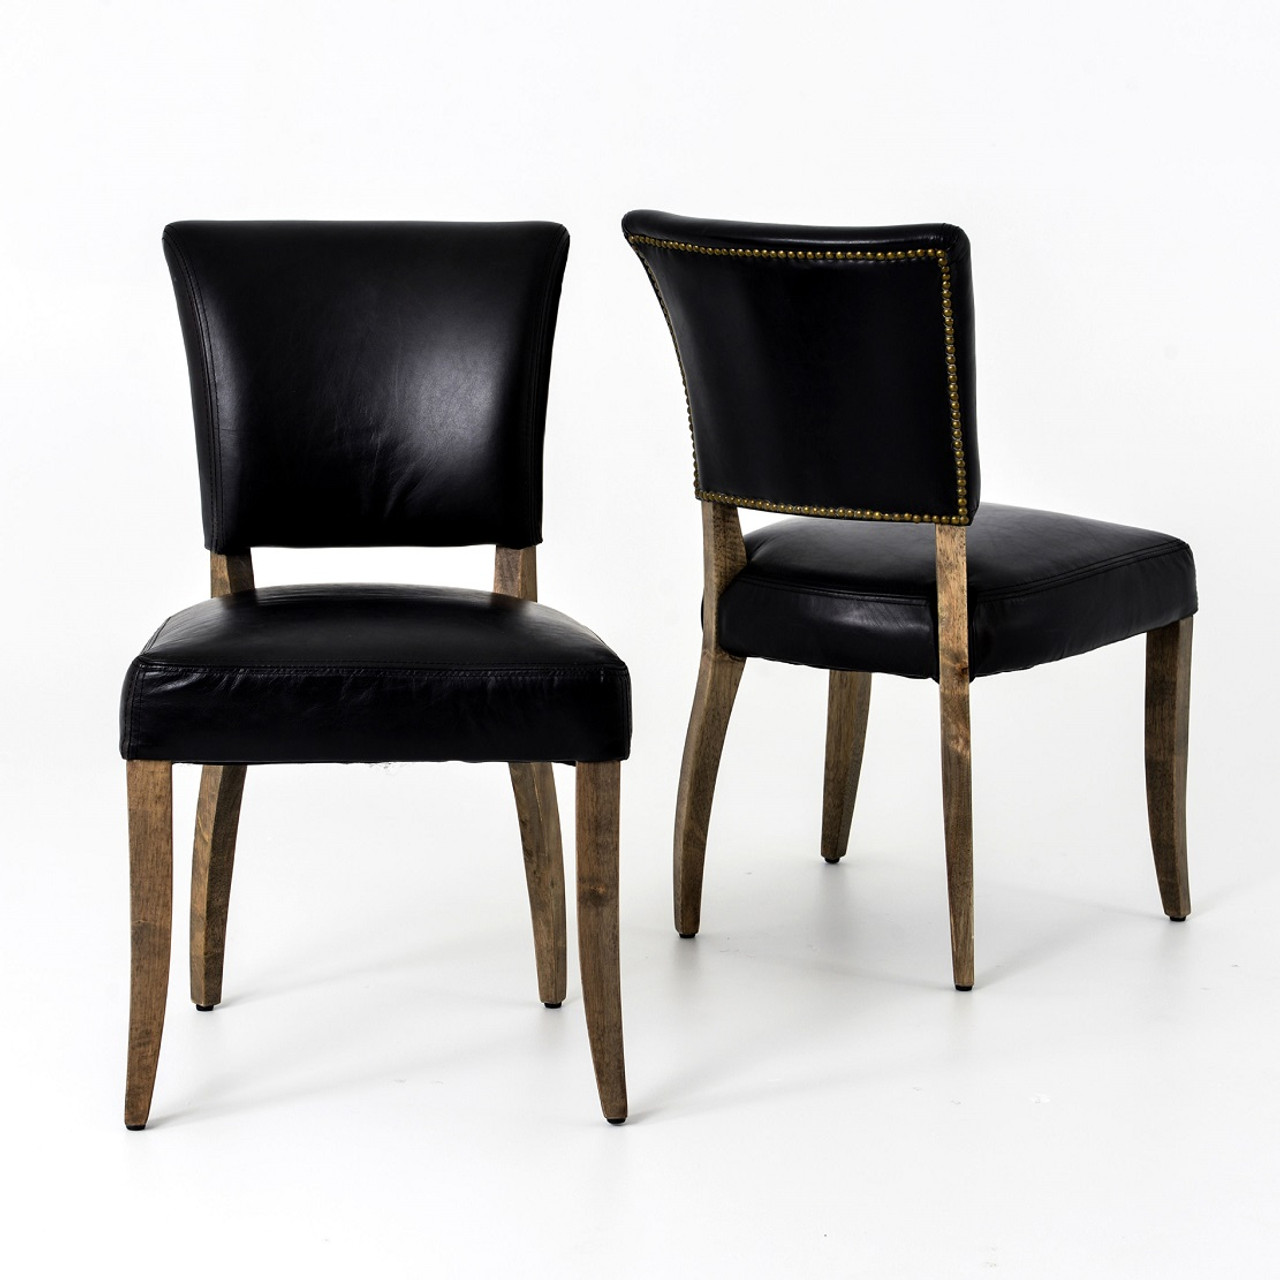 Black Leather Dining Chairs Mimi Saddle Black Leather Dining Chair